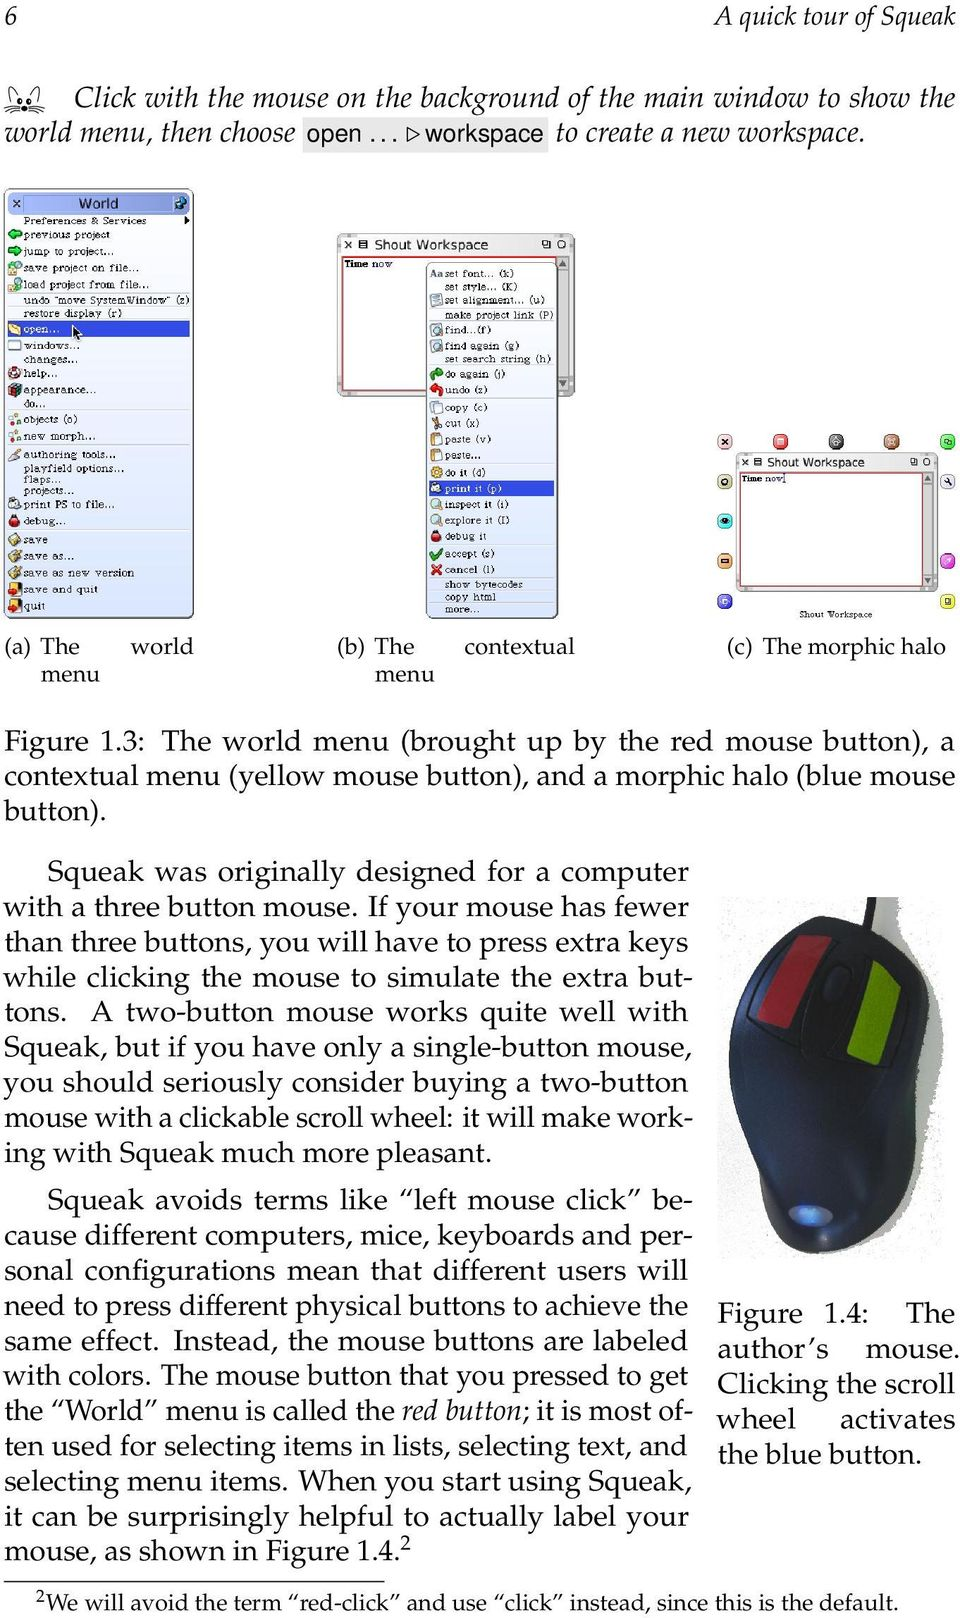 3: The world menu (brought up by the red mouse button), a contextual menu (yellow mouse button), and a morphic halo (blue mouse button).